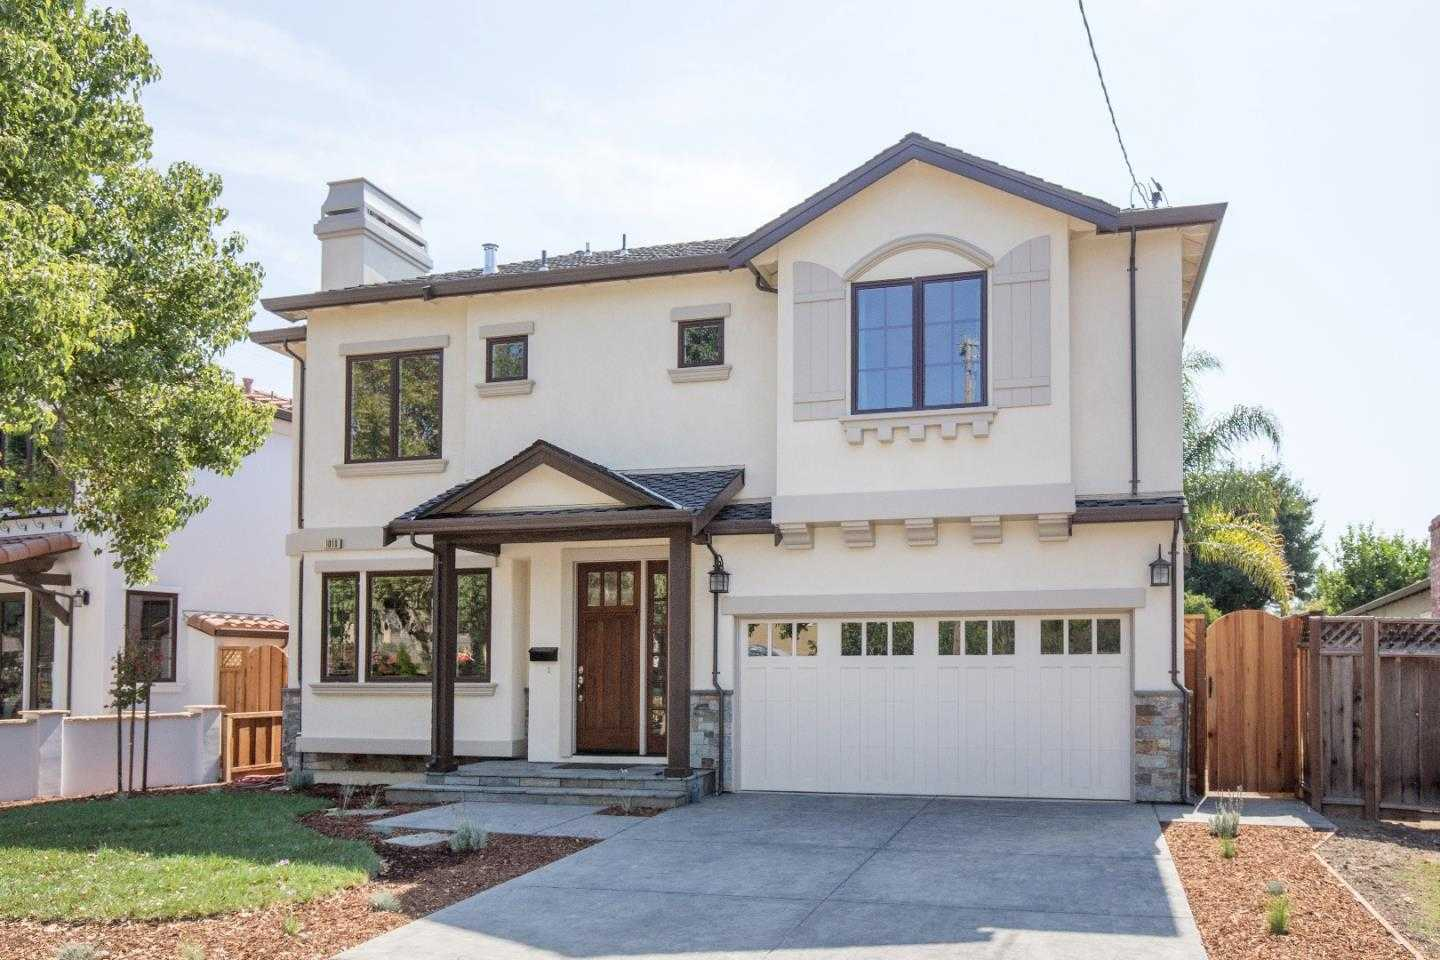 $1,465,000 - 3Br/3Ba -  for Sale in San Jose